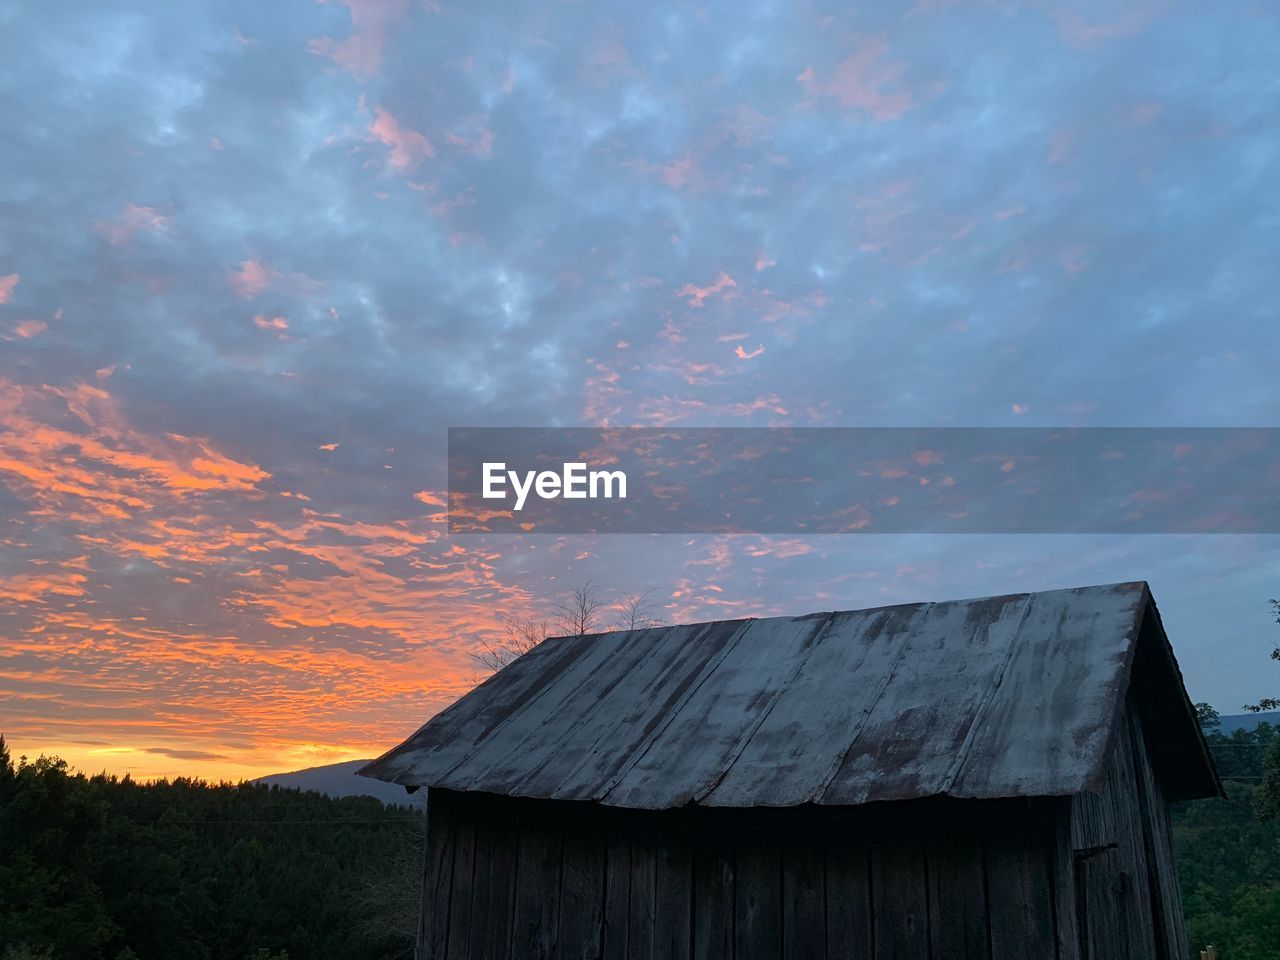 sky, cloud - sky, sunset, built structure, architecture, nature, building exterior, wood - material, no people, beauty in nature, plant, orange color, scenics - nature, agricultural building, house, outdoors, abandoned, barn, field, land